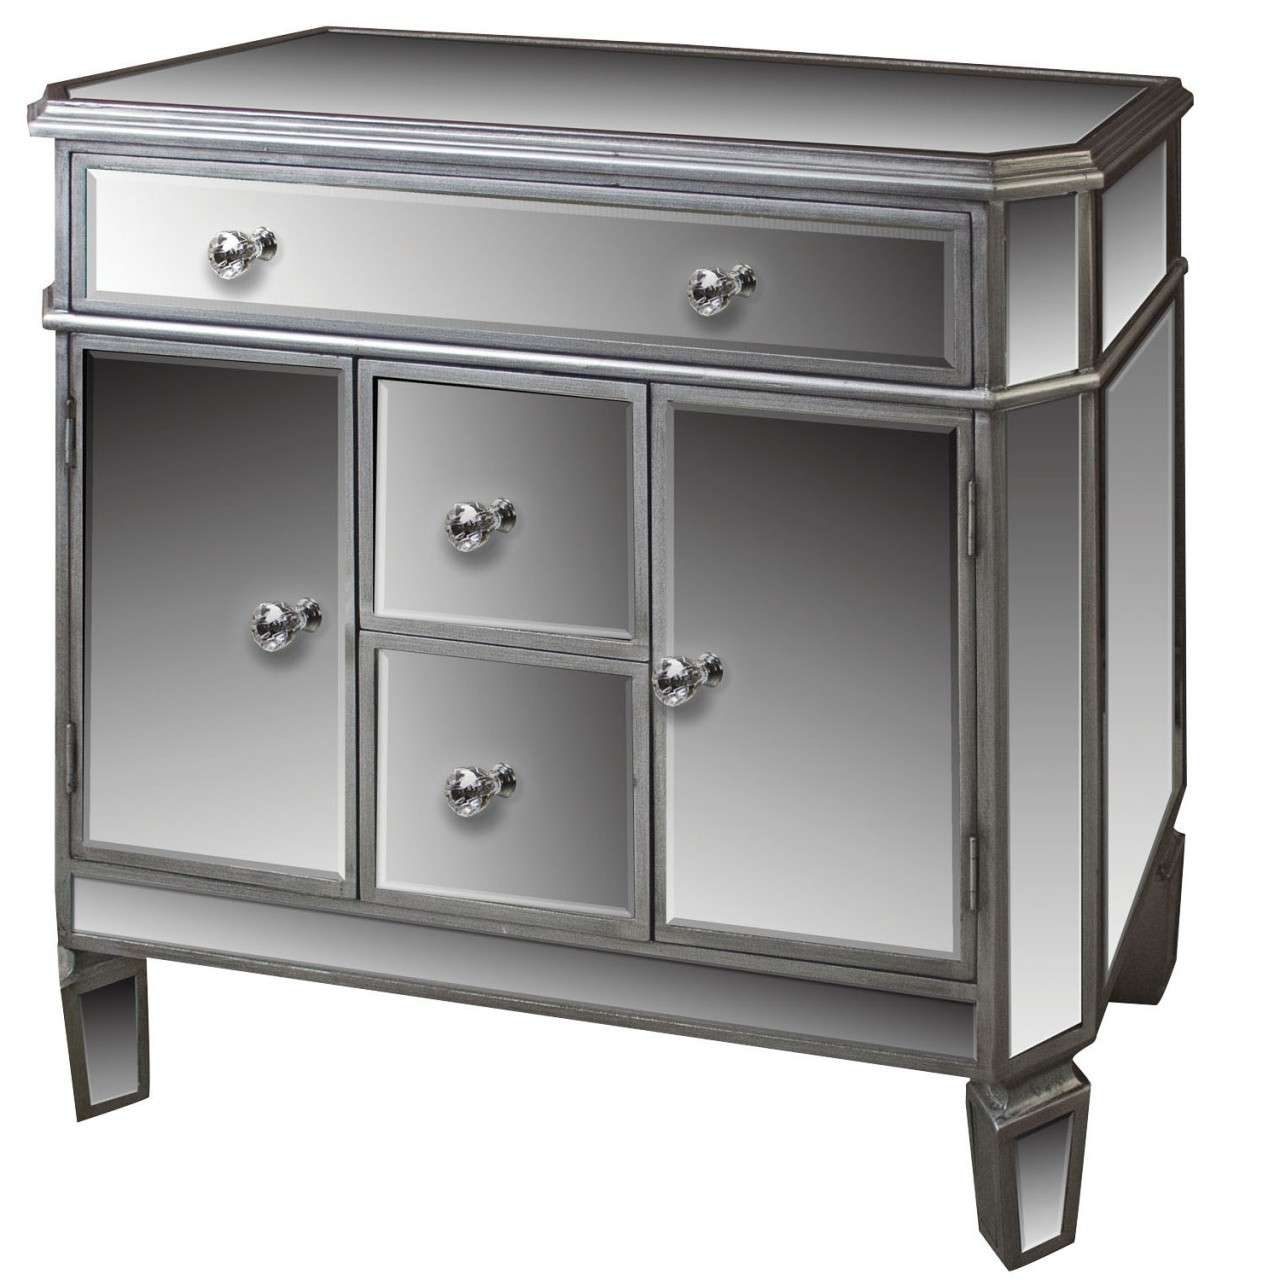 Home Ideas: Beautiful Shines Mirrored Sideboard For Home Furniture With Regard To Small Mirrored Sideboards (View 6 of 20)